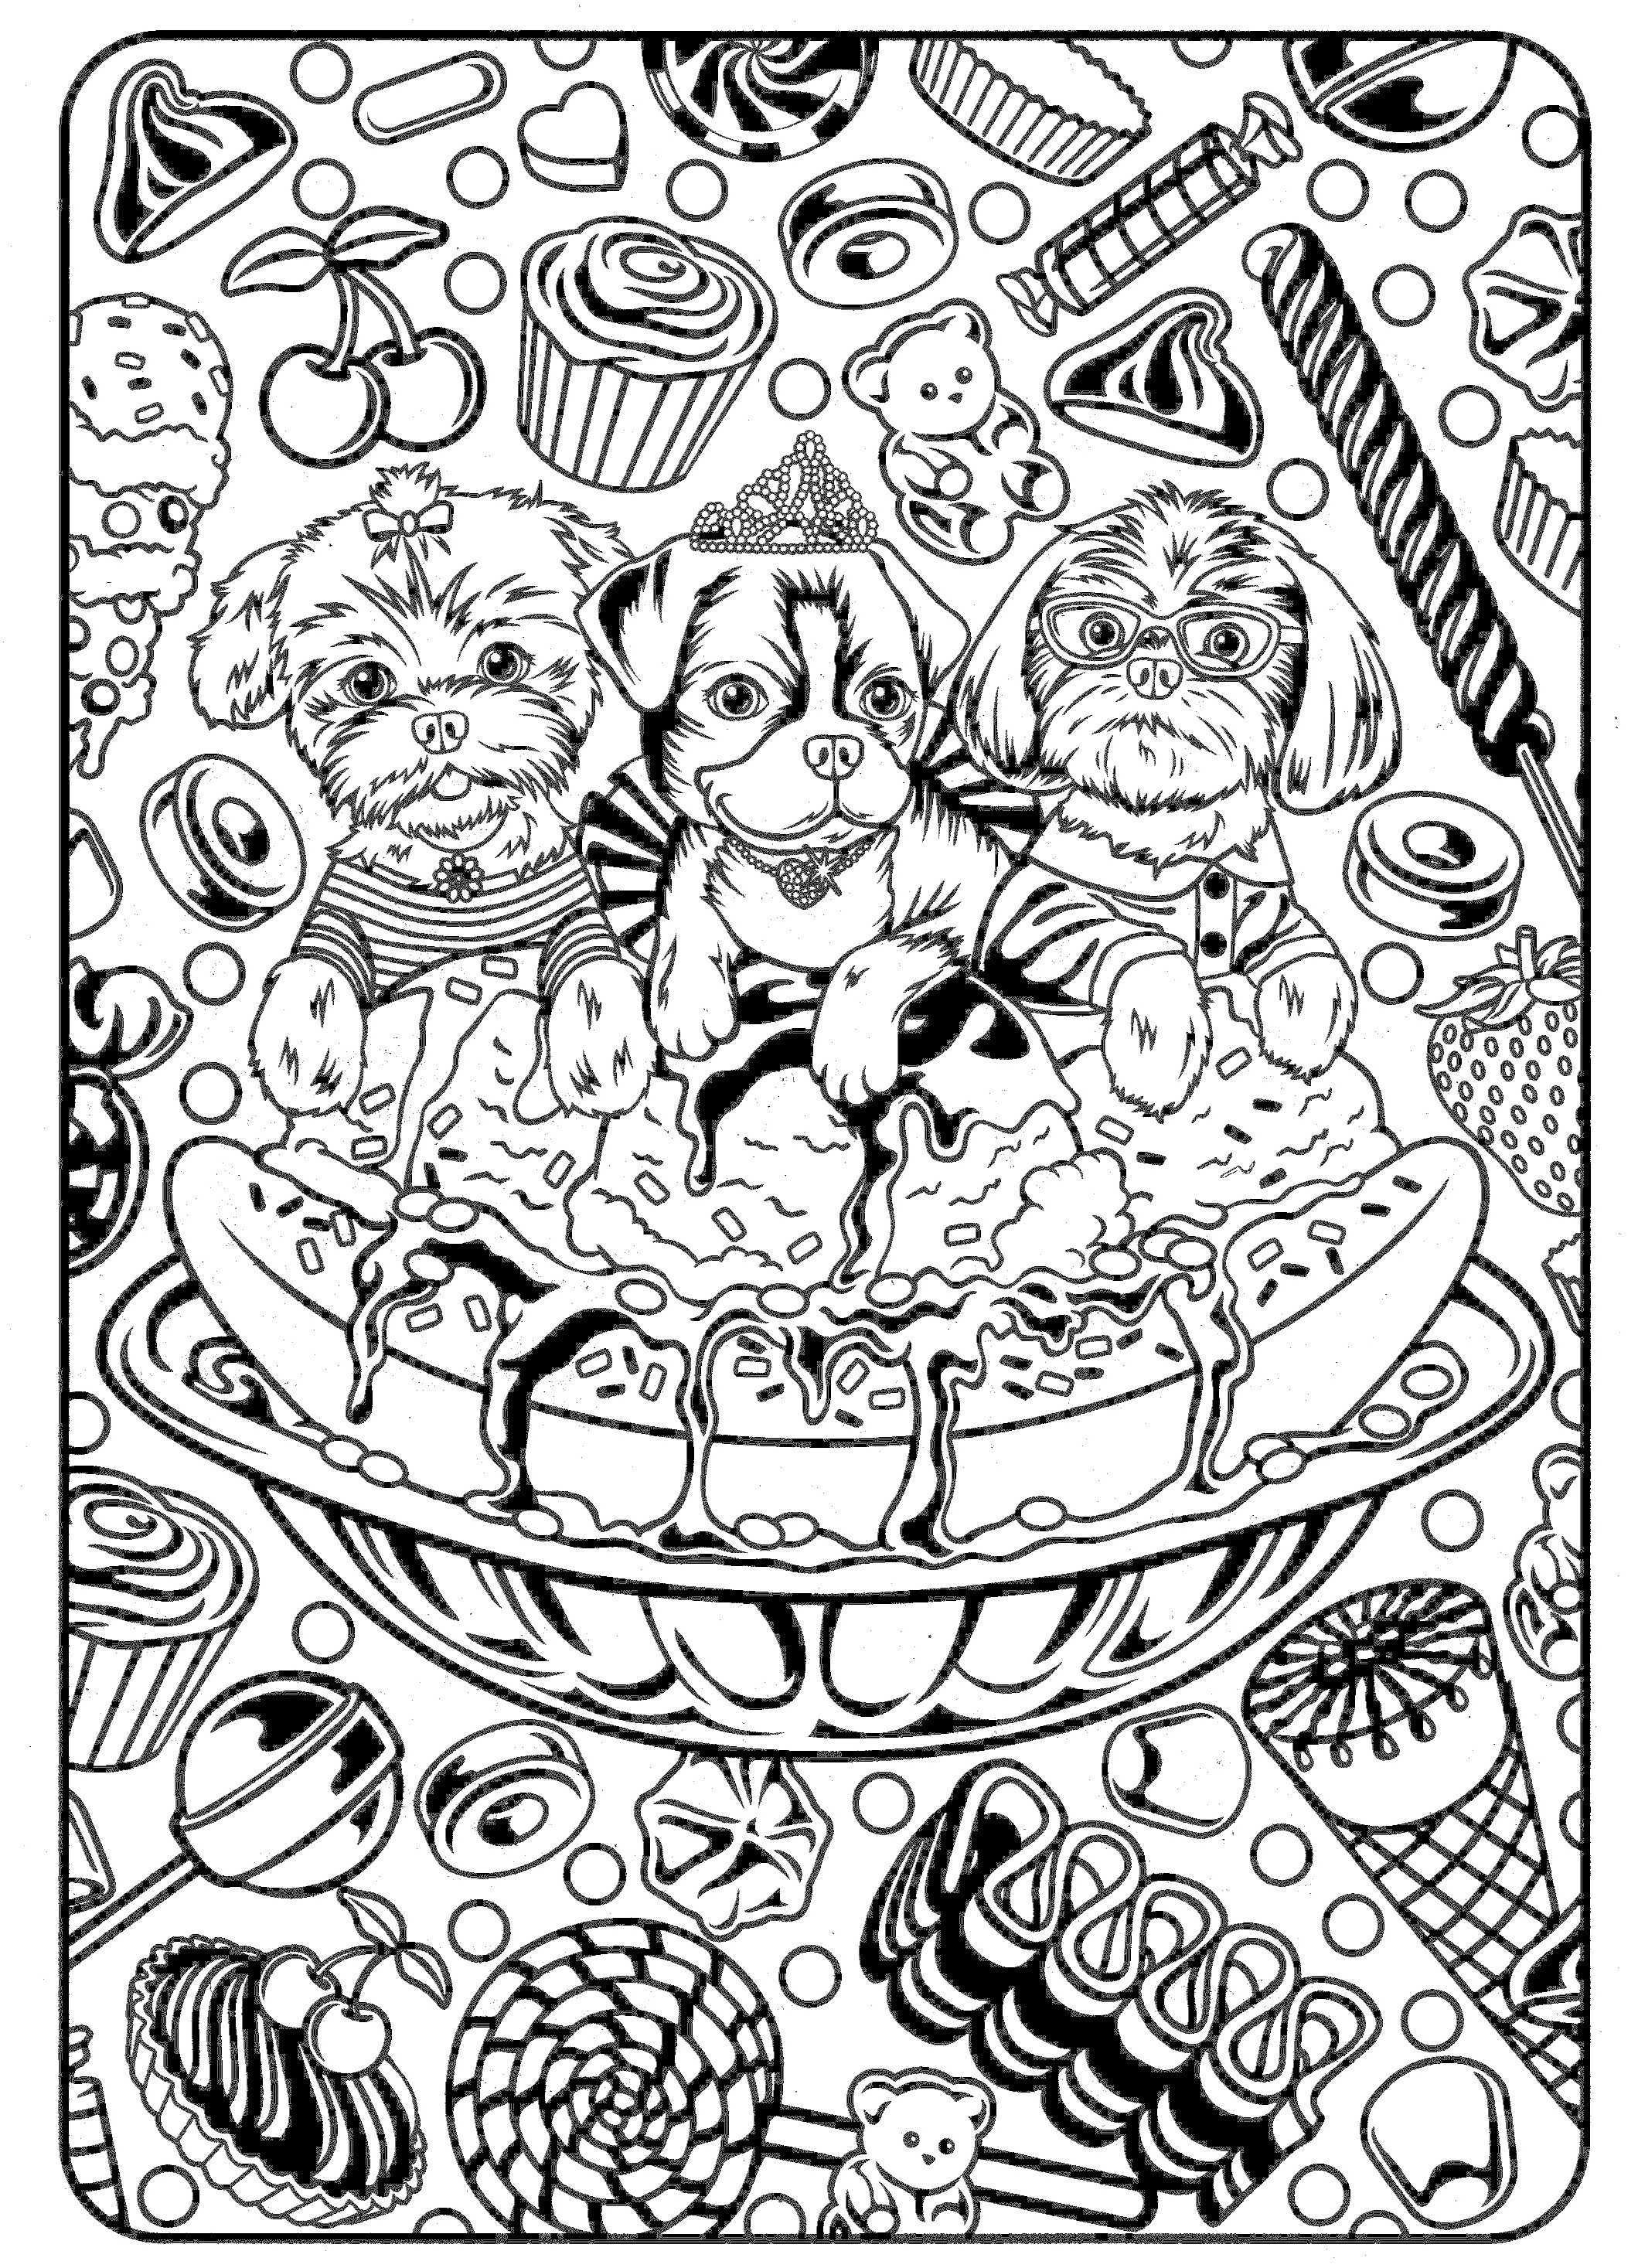 Trippy Coloring Pages Trippy Coloring Pages Beautiful New Trippy Coloring Pages Coloring